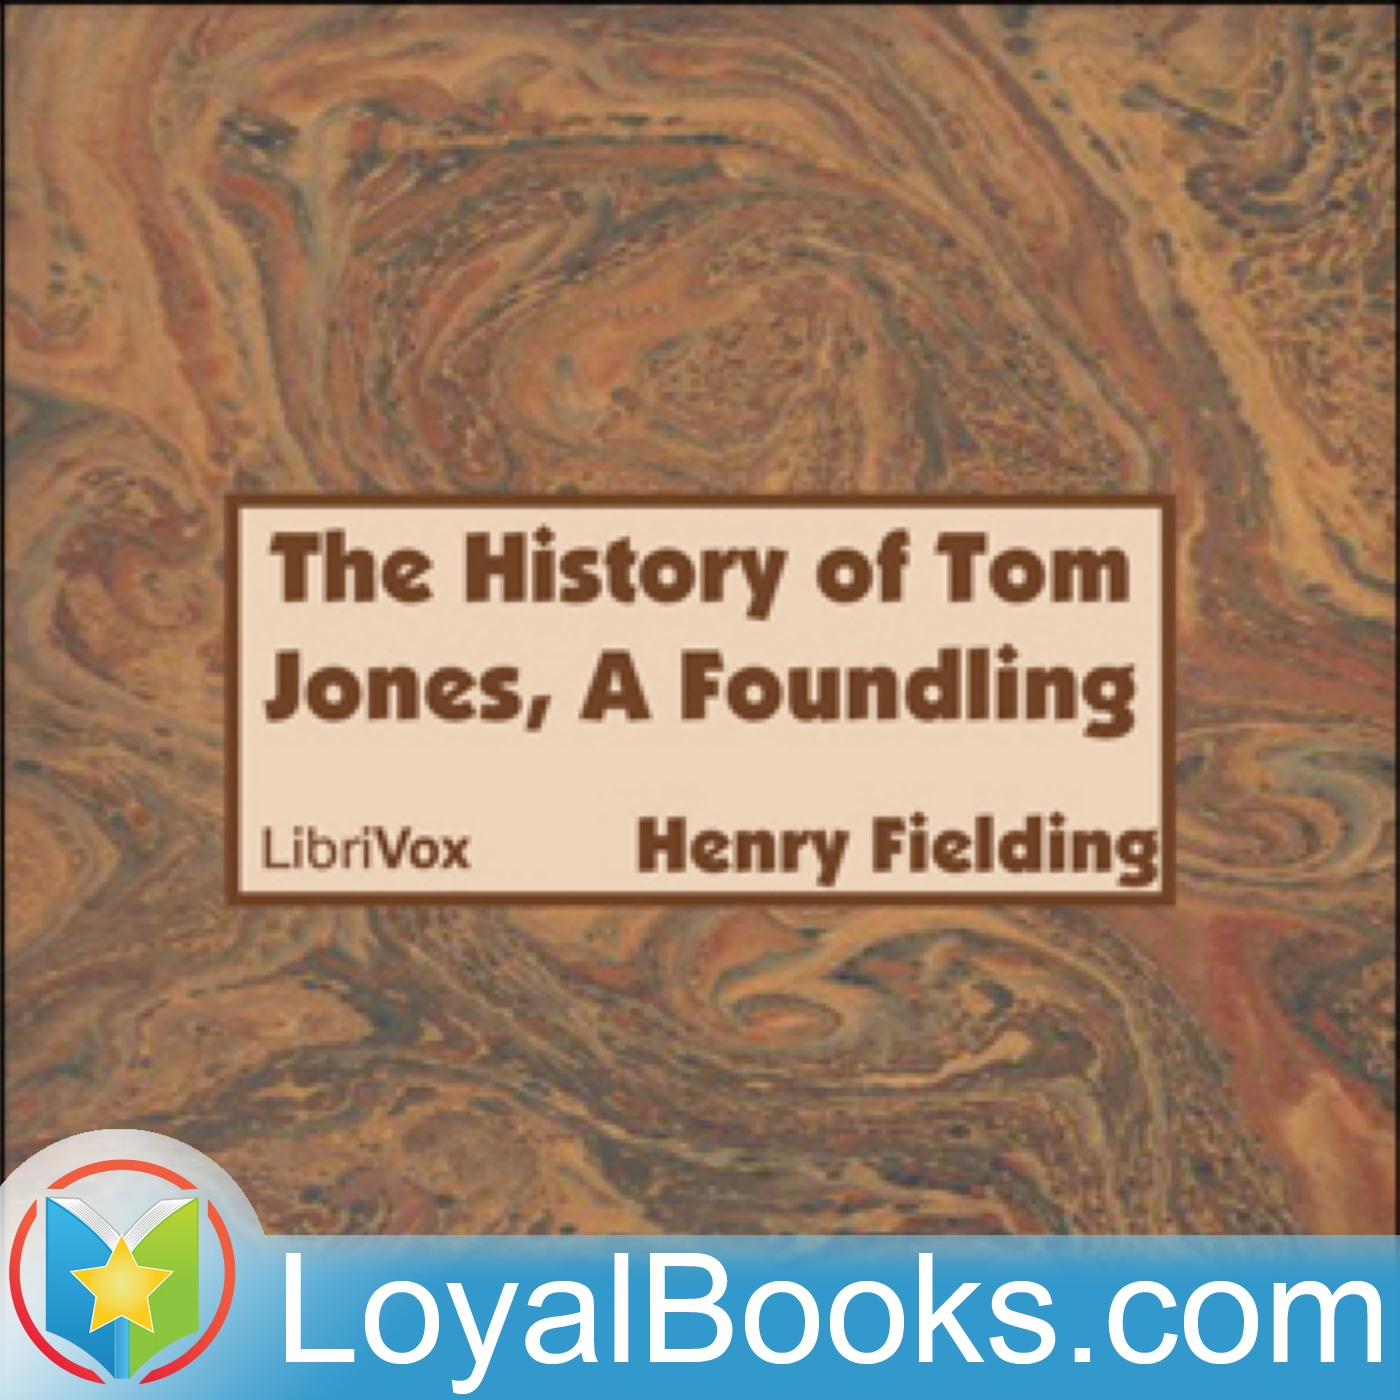 Henry Fielding, The History of Tom Jones: a description of the book, content and reviews